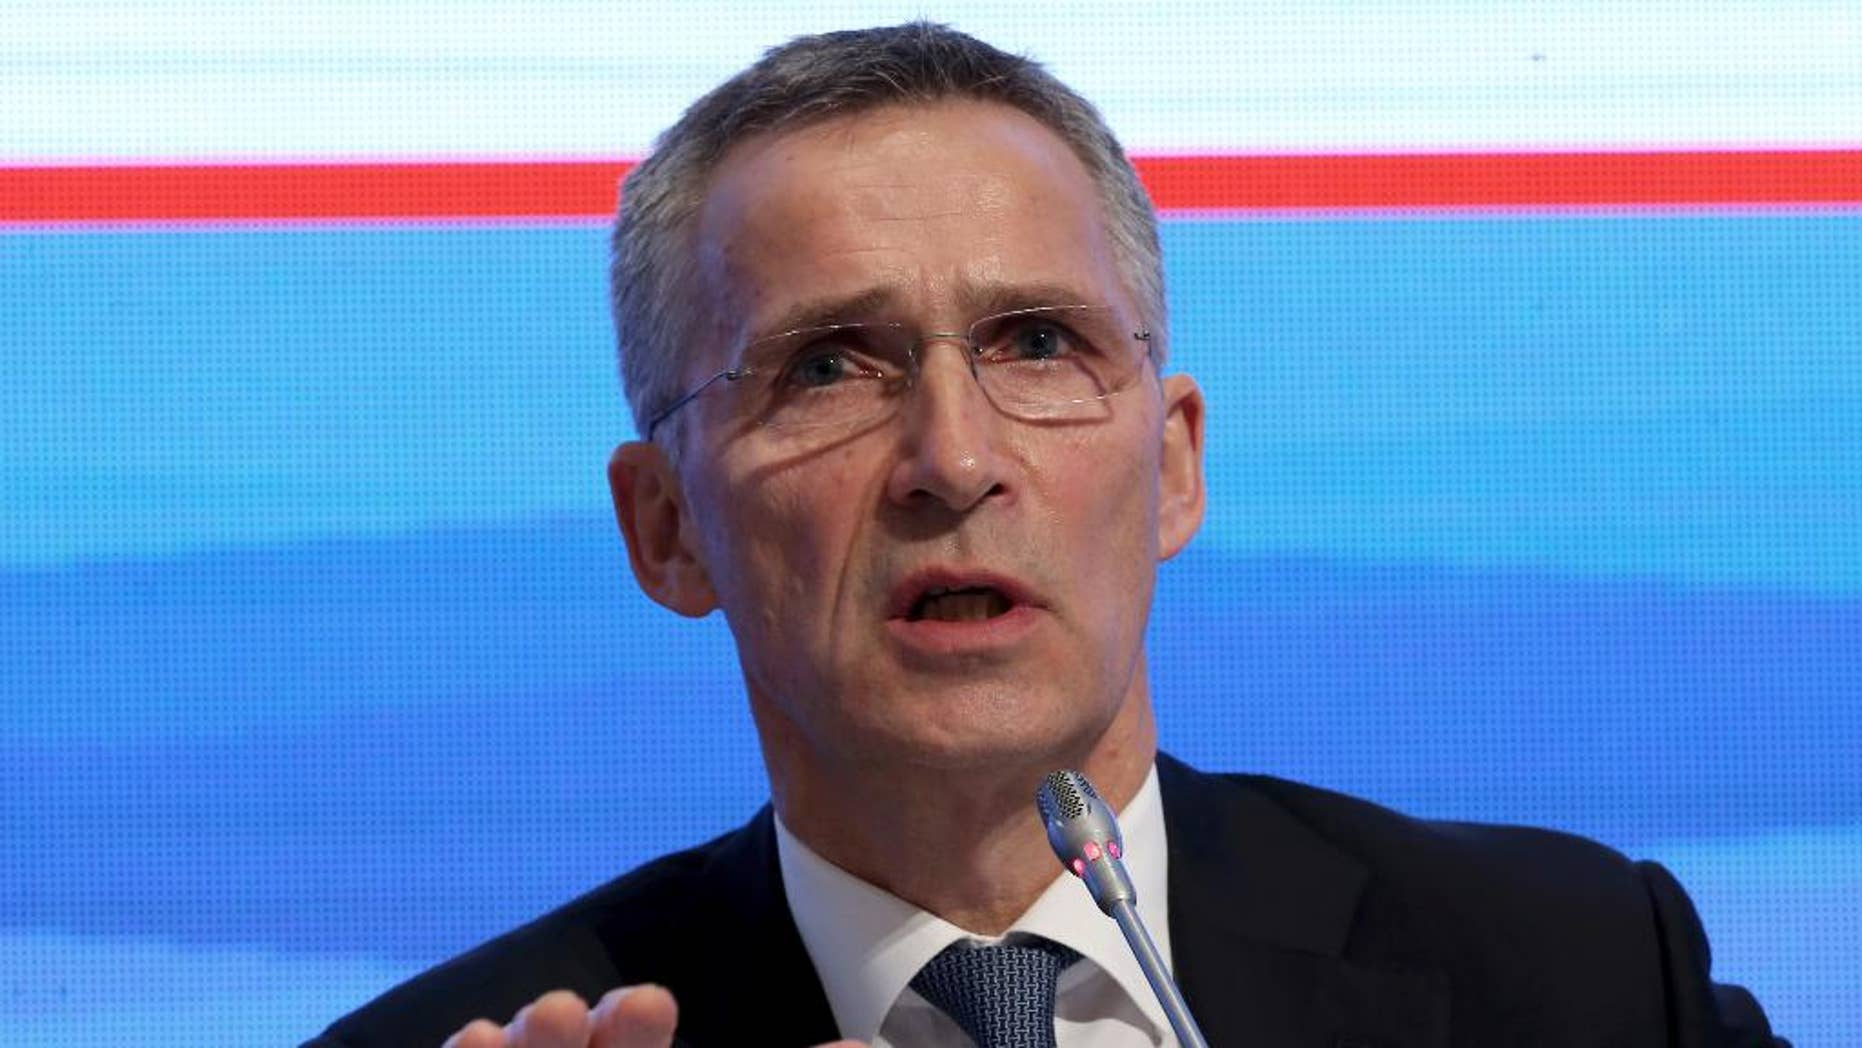 """NATO Secretary General Jens Stoltenberg addresses a NATO parliamentary assembly meeting in Istanbul, Monday, Nov. 21, 2016. Talking about latest situation, Stoltenberg said that """" We have seen a significant buildup of Russia in Syria; they have conducted air strikes again and again, civilians, innocent people are killed and critical infrastructure such as hospitals are attacked and the humanitarian tragedy in Syria becomes even worse.""""(AP Photo)"""